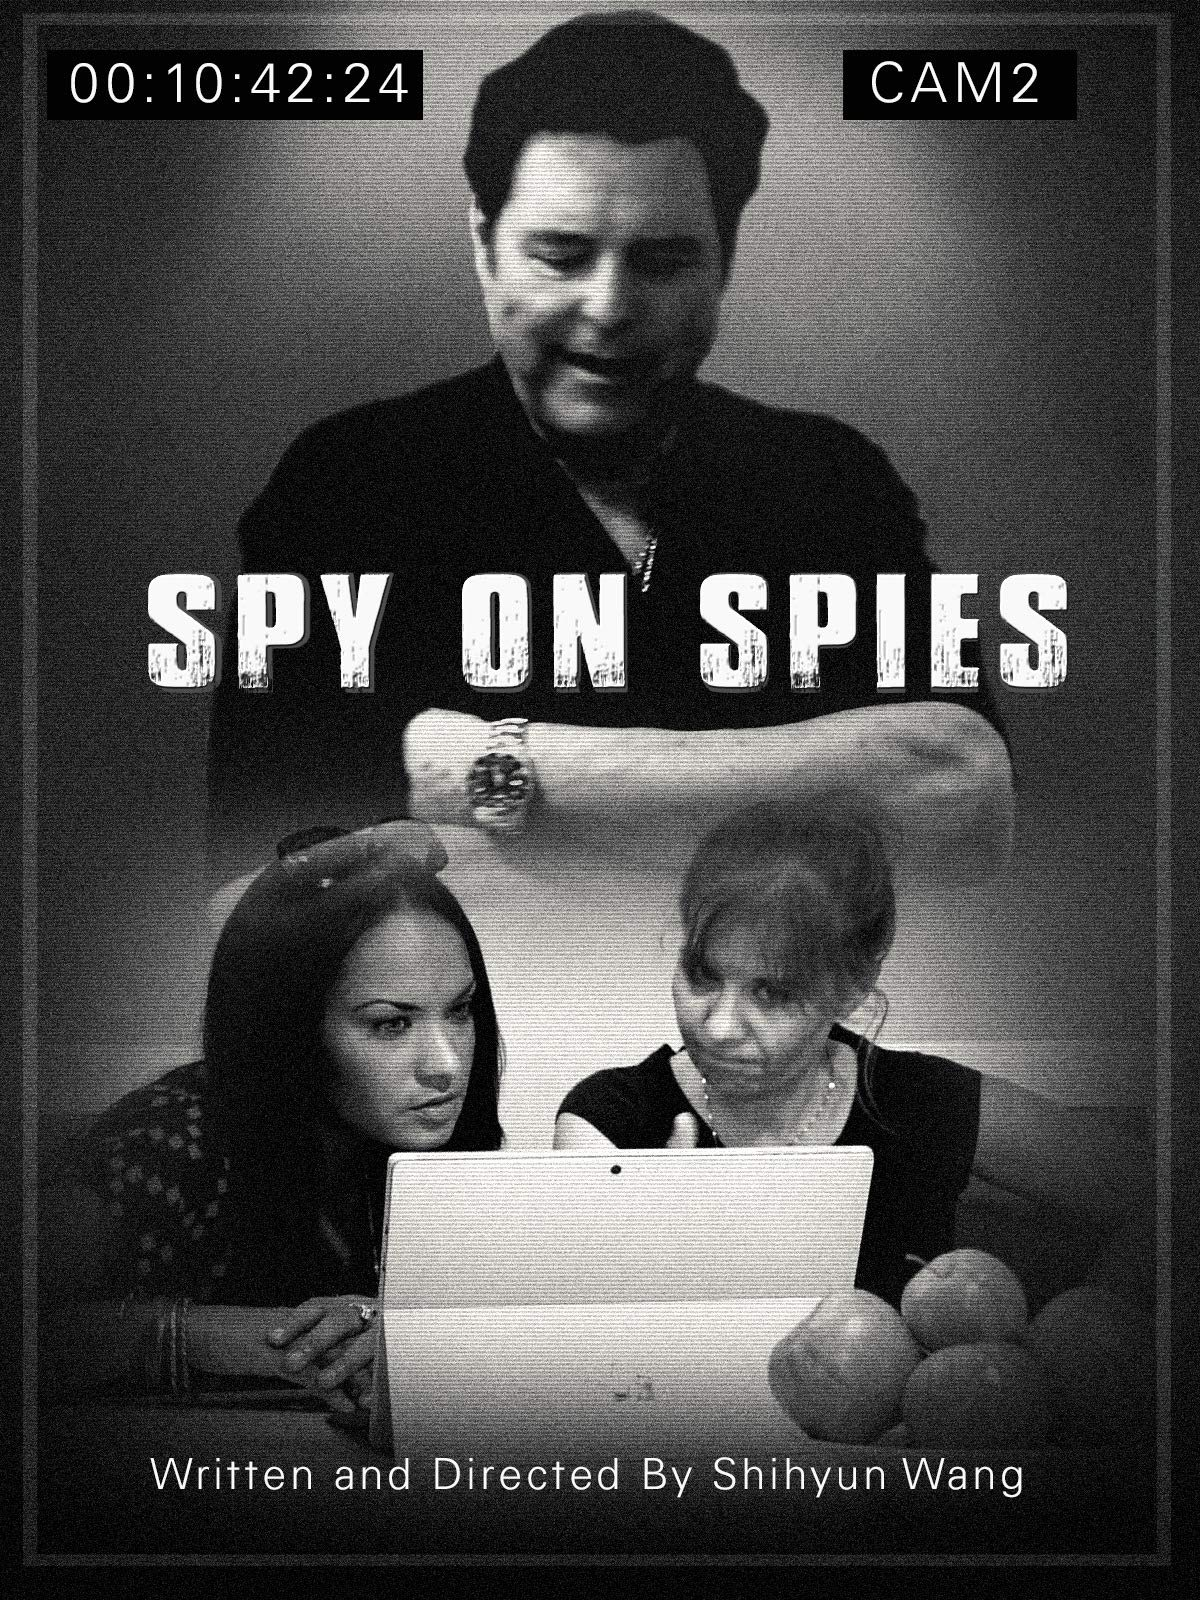 Spy on spies